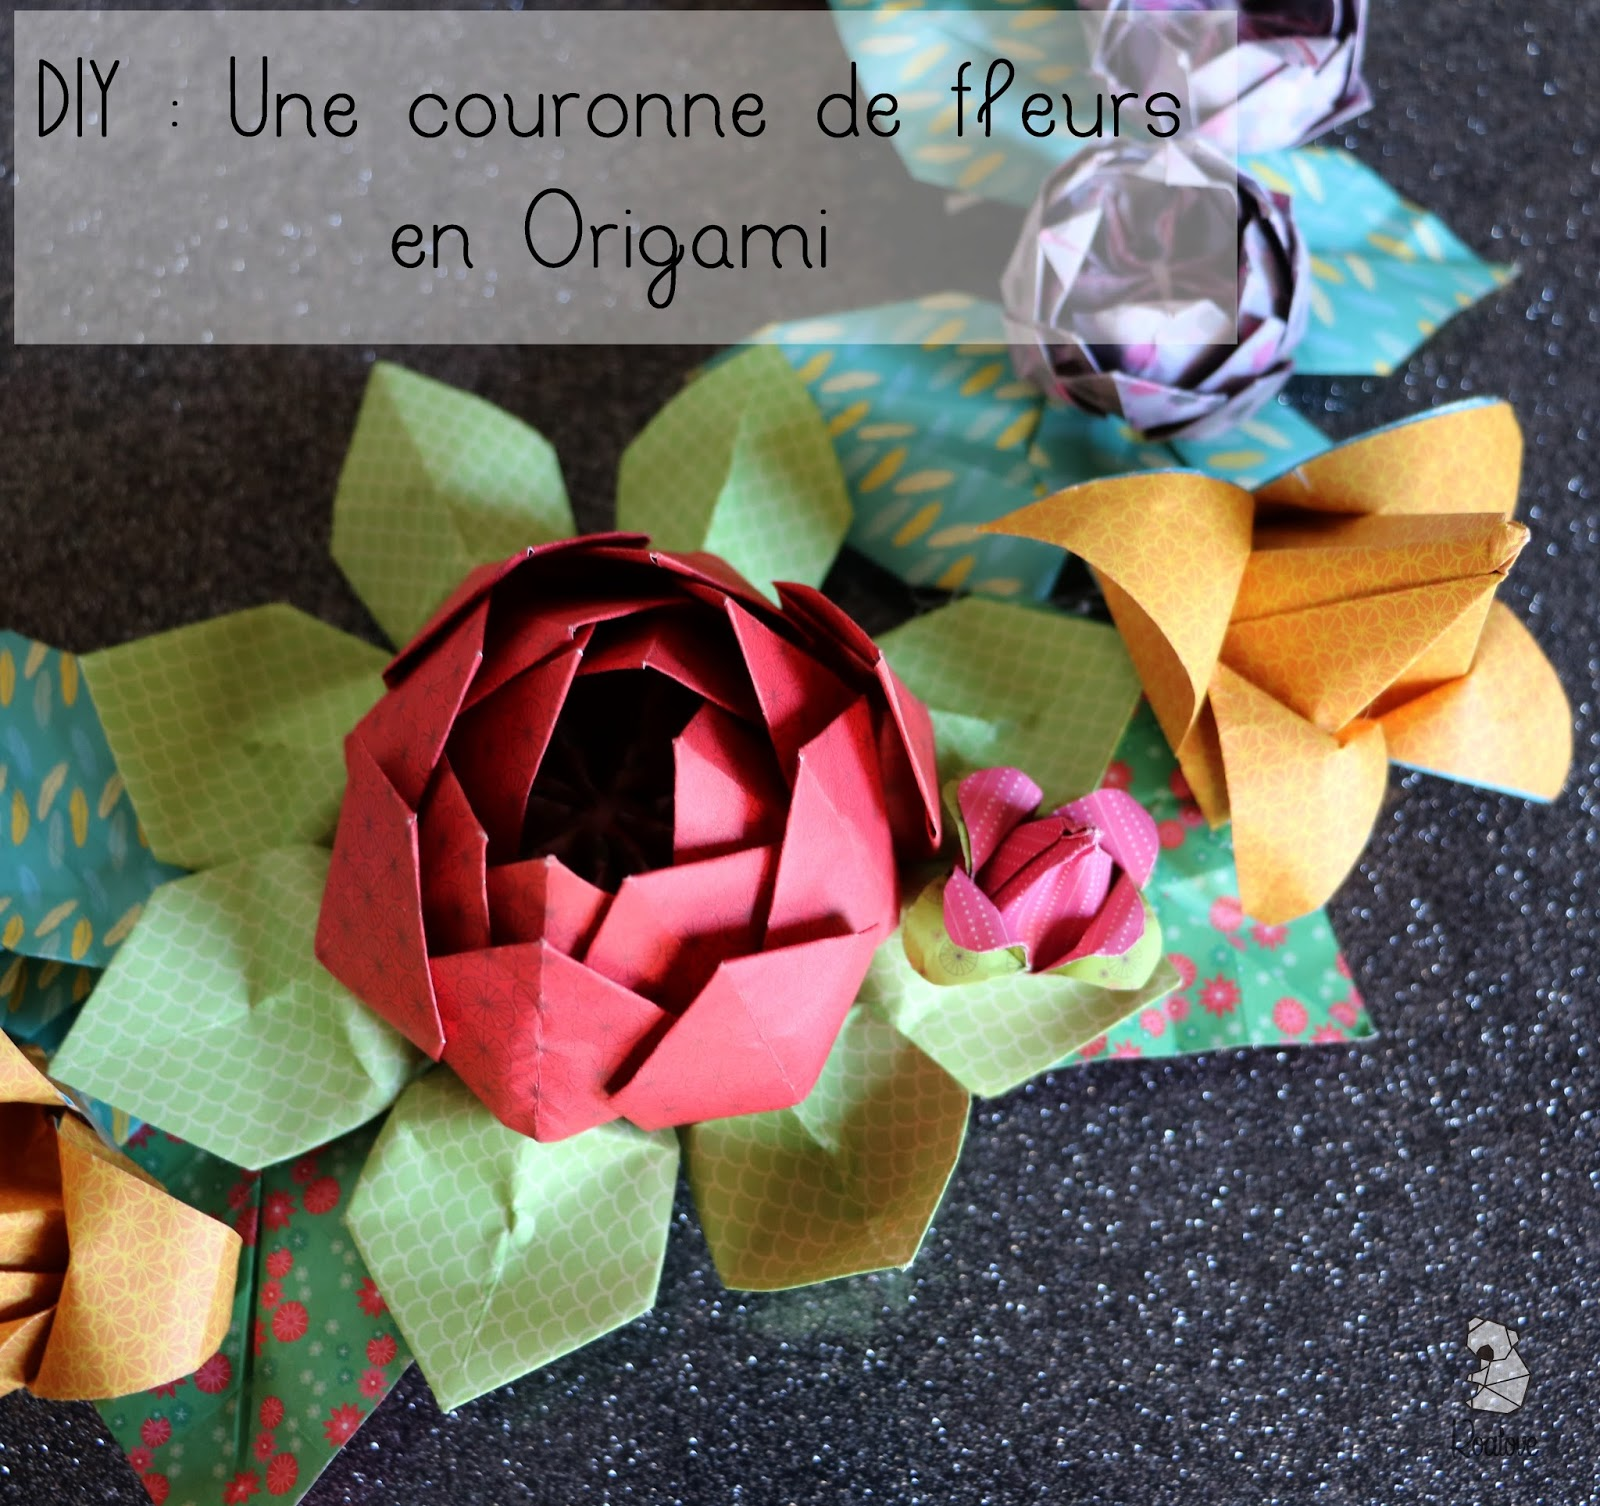 koalove diy une couronne de fleurs en origami. Black Bedroom Furniture Sets. Home Design Ideas